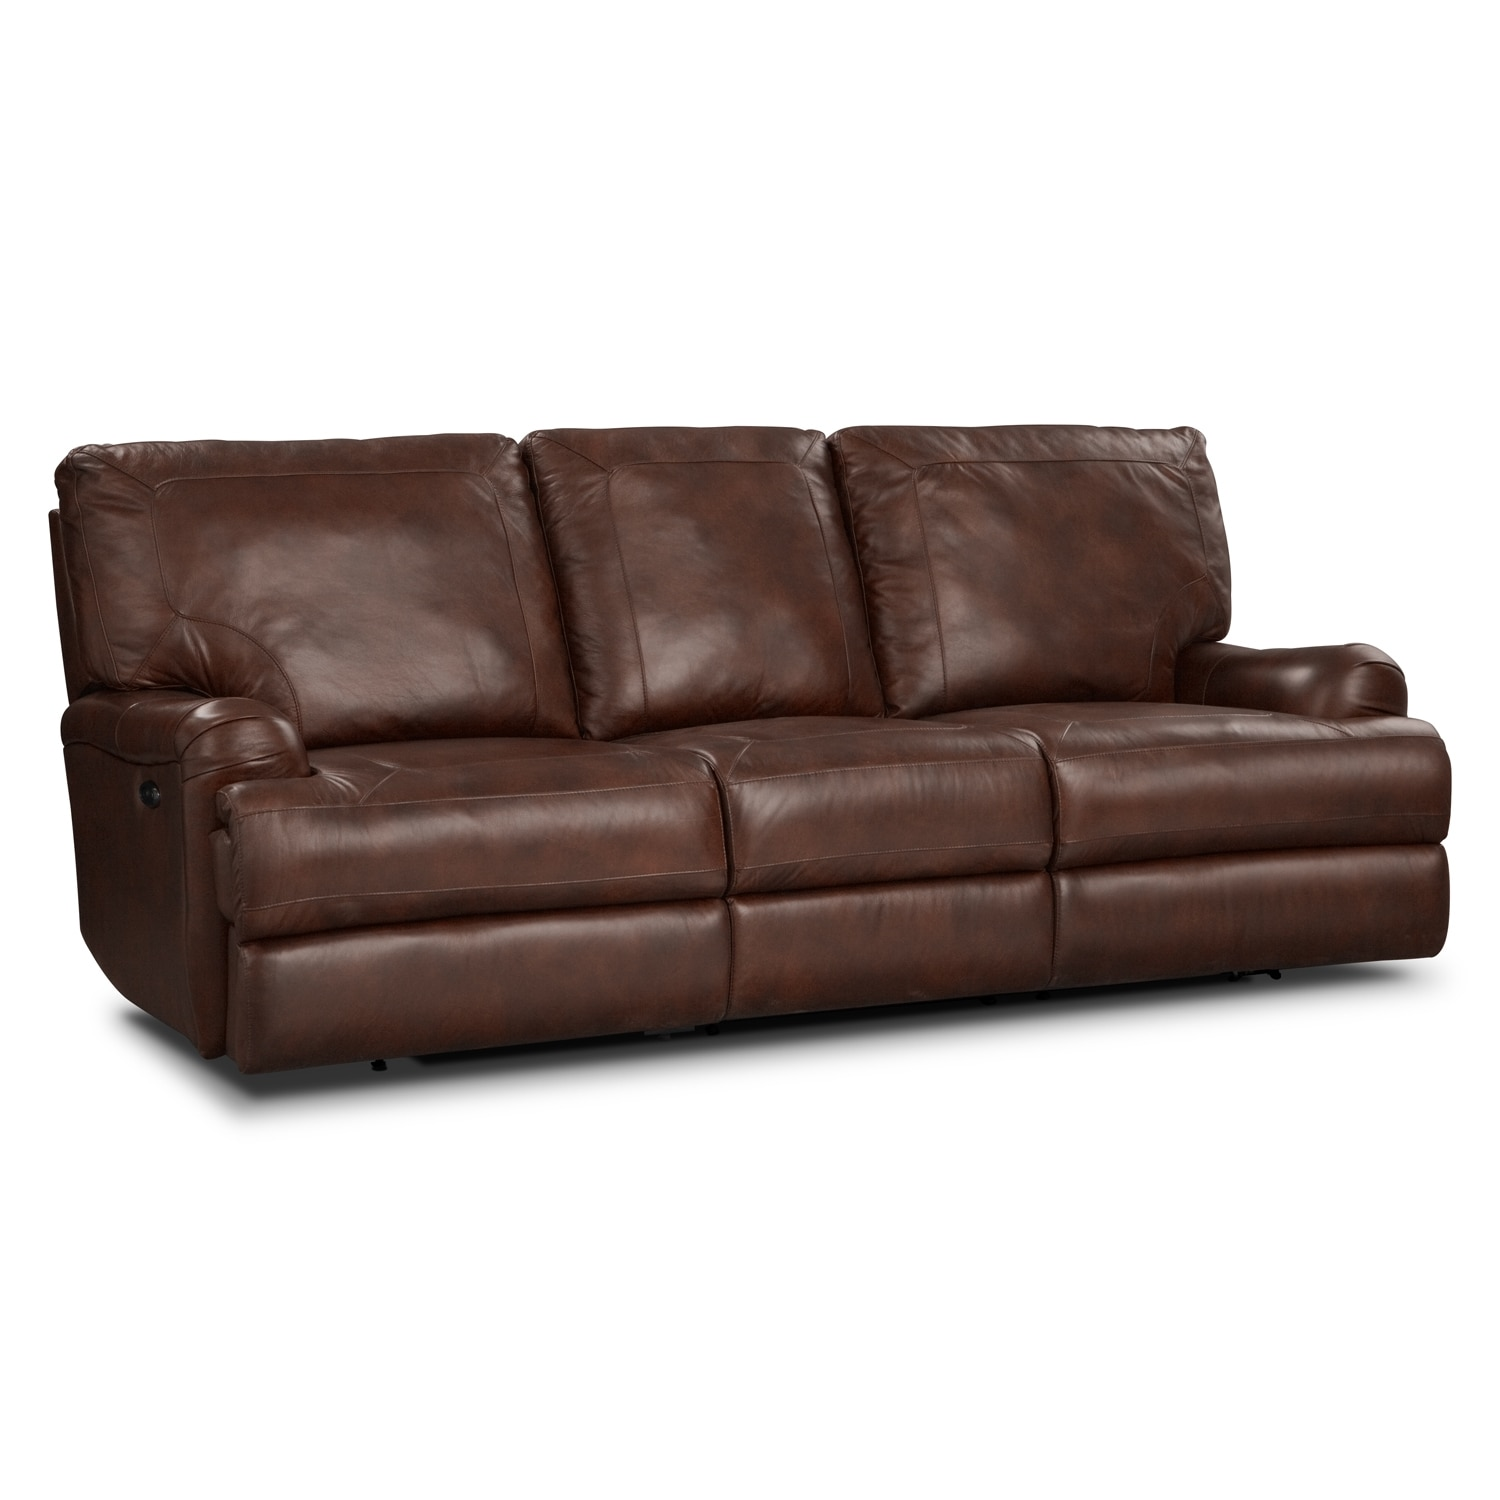 Kingsway leather power reclining sofa value city furniture Power loveseat recliner